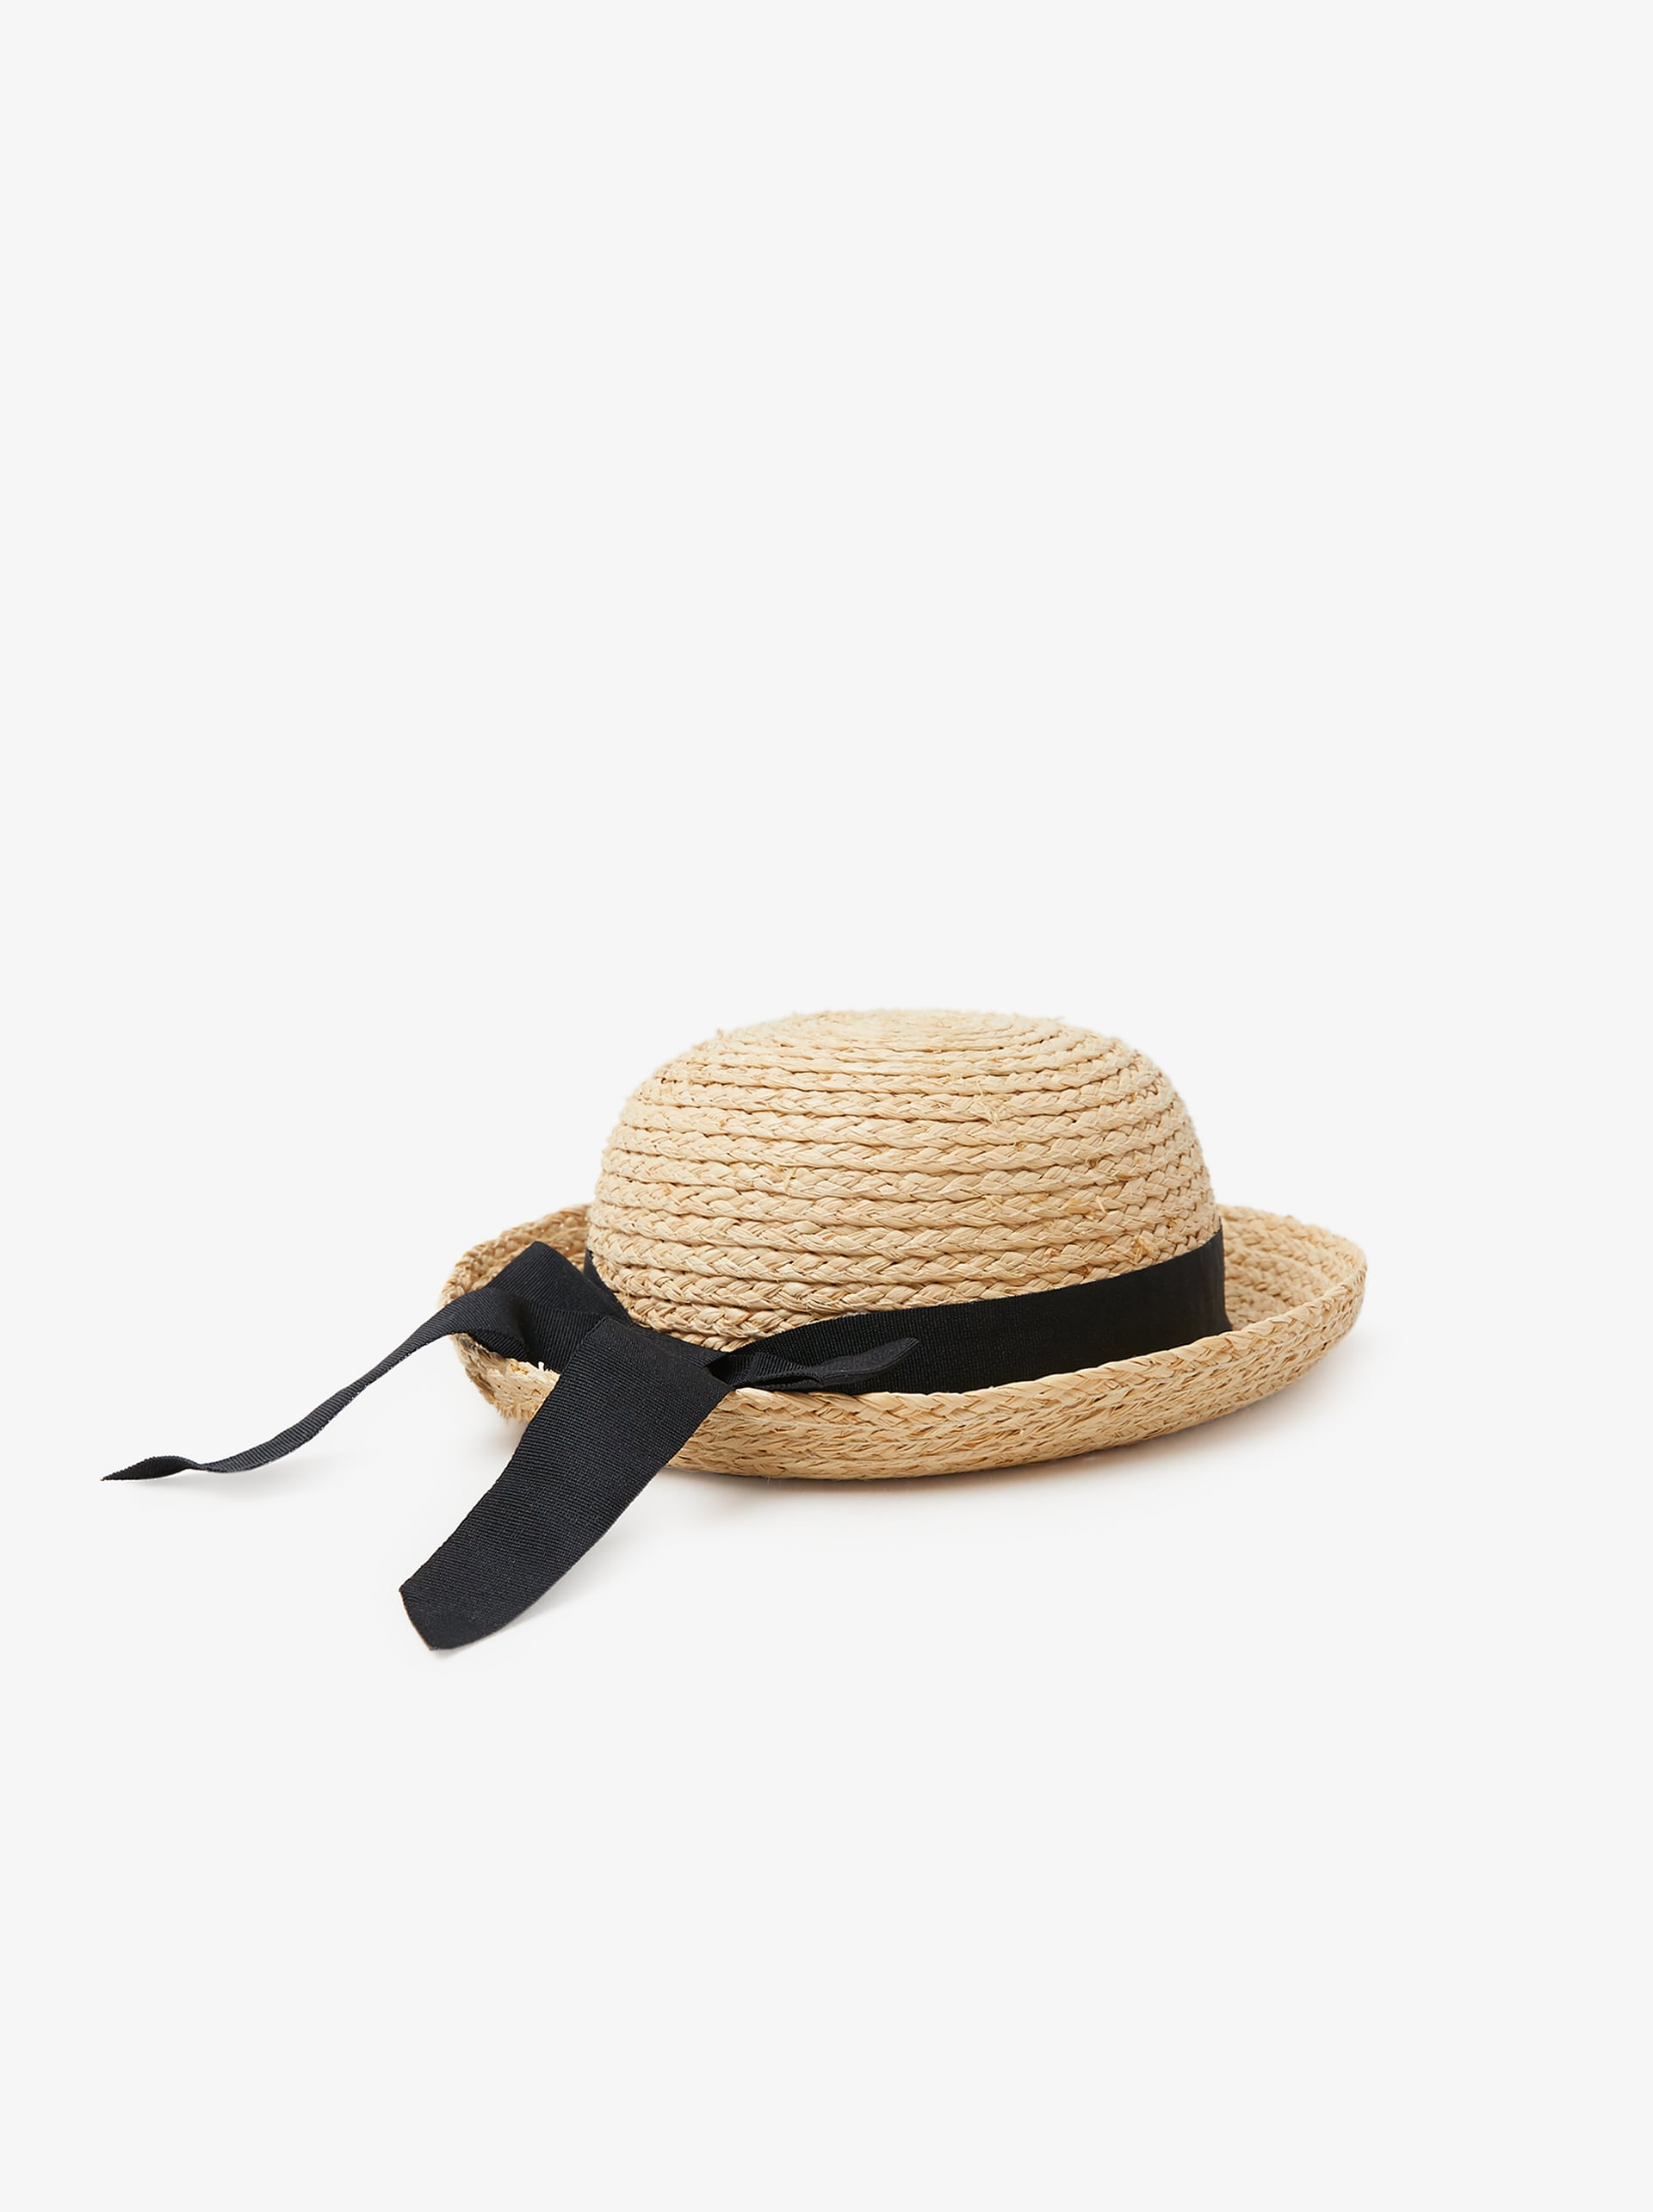 58c35048 STRAW HAT WITH RIBBON - Hats-BABY GIRL-ACCESSORIES-KIDS | ZARA ...